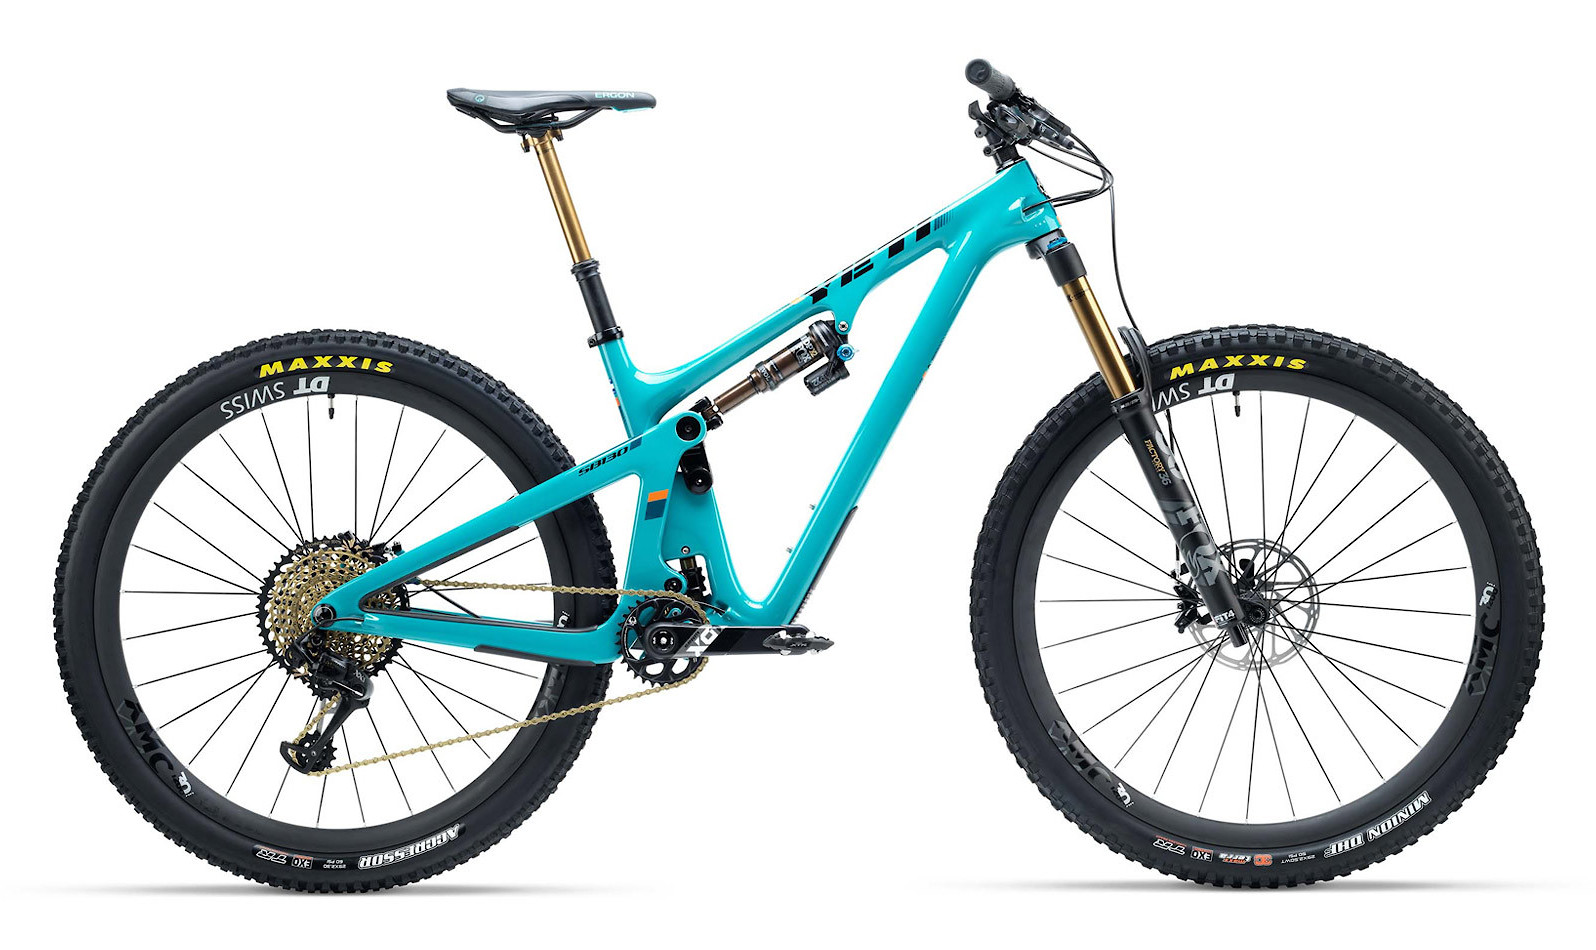 2019 Yeti SB130 Turquoise - Shown with XX1 kit